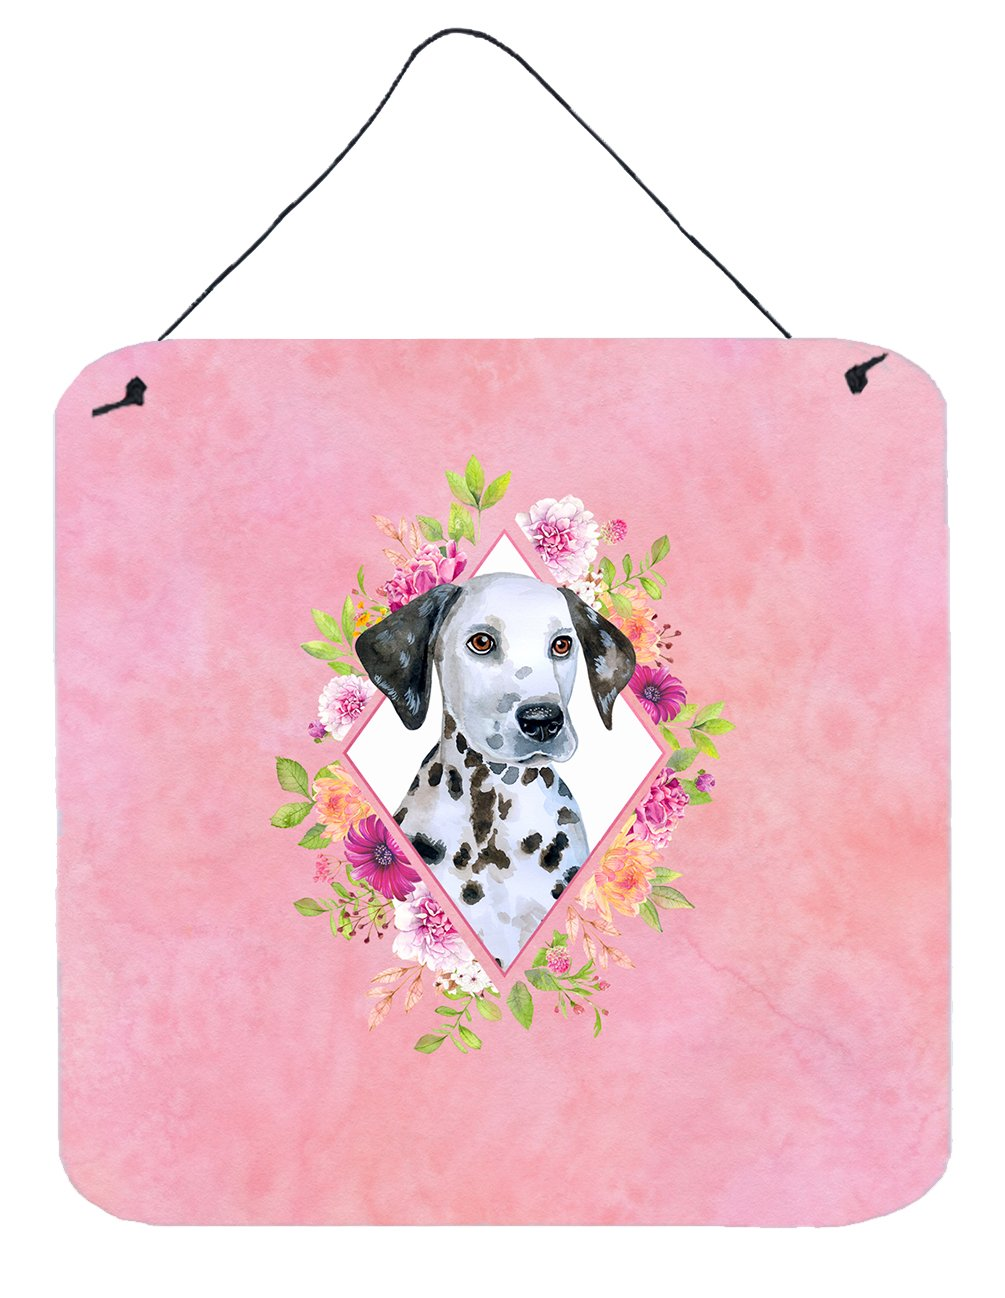 Dalmatian Puppy Pink Flowers Wall or Door Hanging Prints CK4136DS66 by Caroline's Treasures